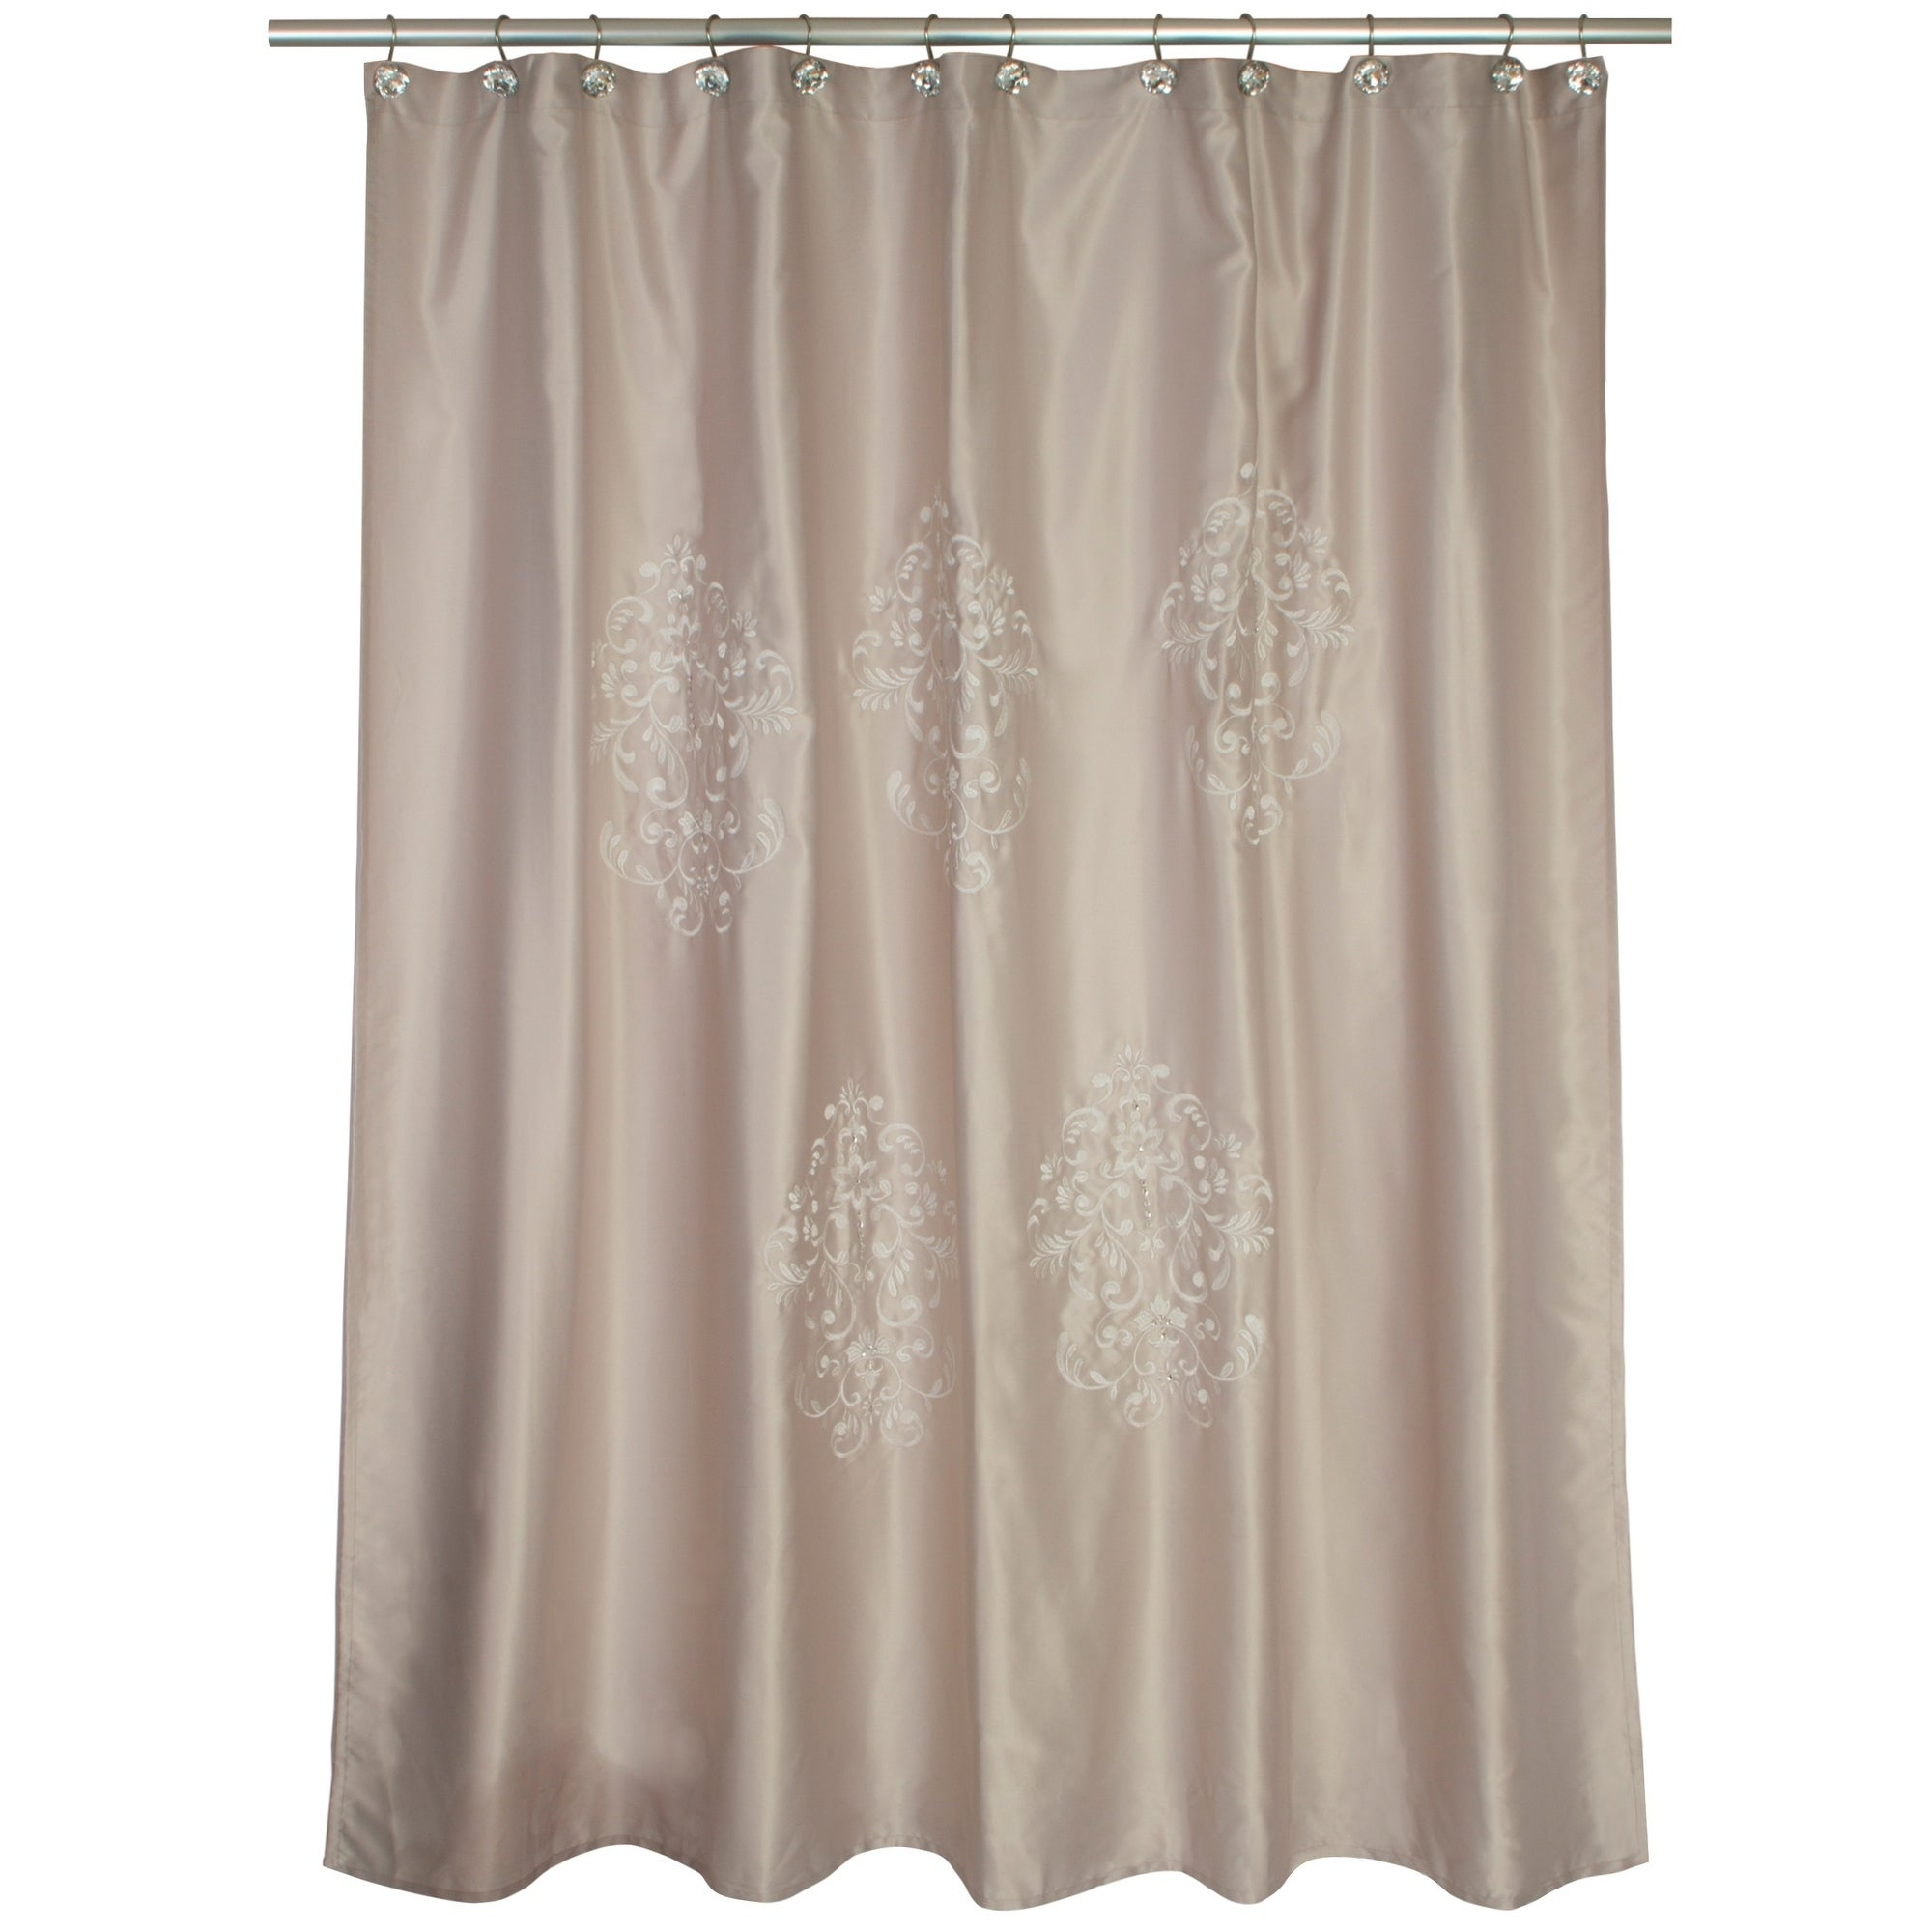 Contempo Beige Shower Curtain 70 X 72 Overstock 23561689